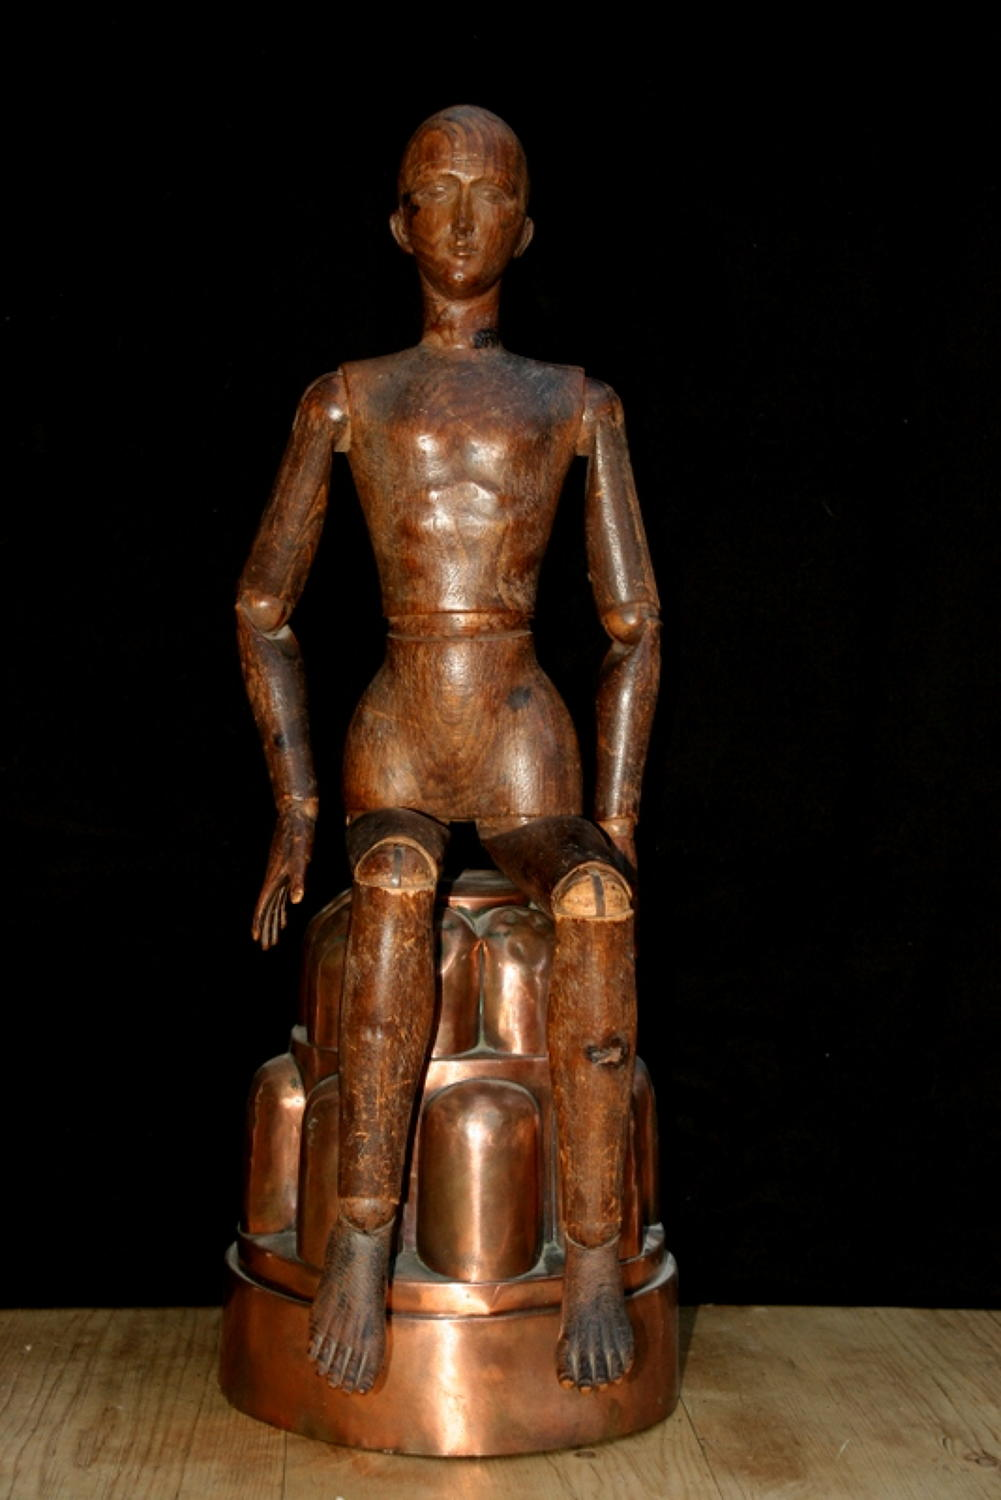 Fine Articulated Artist's Lay Model / Mannequin / figure